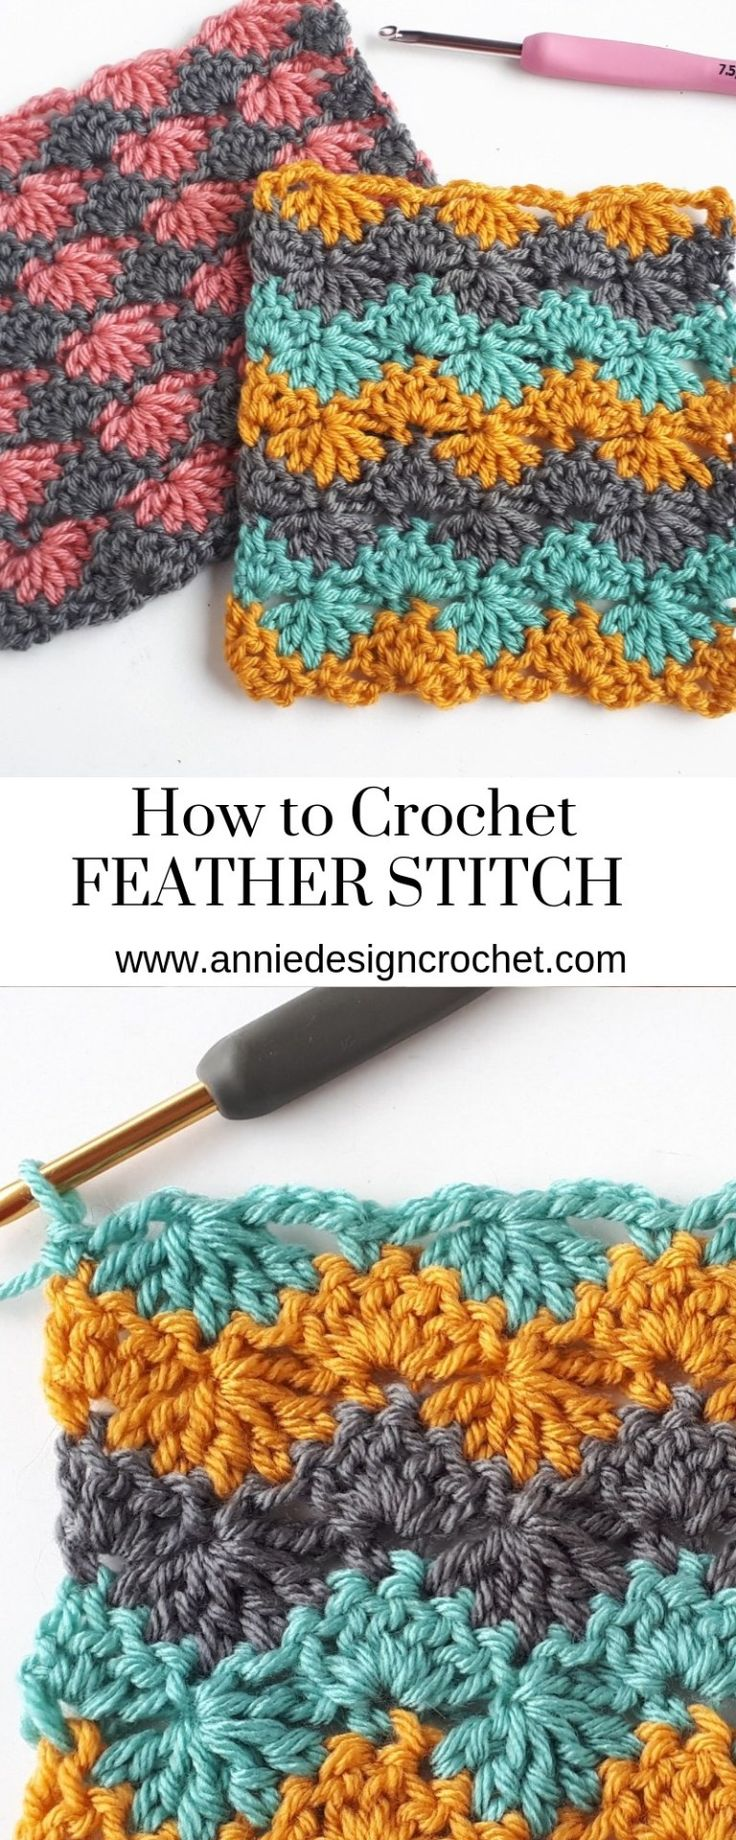 Free Crochet Stitch Tutorial for the Feather stitc…